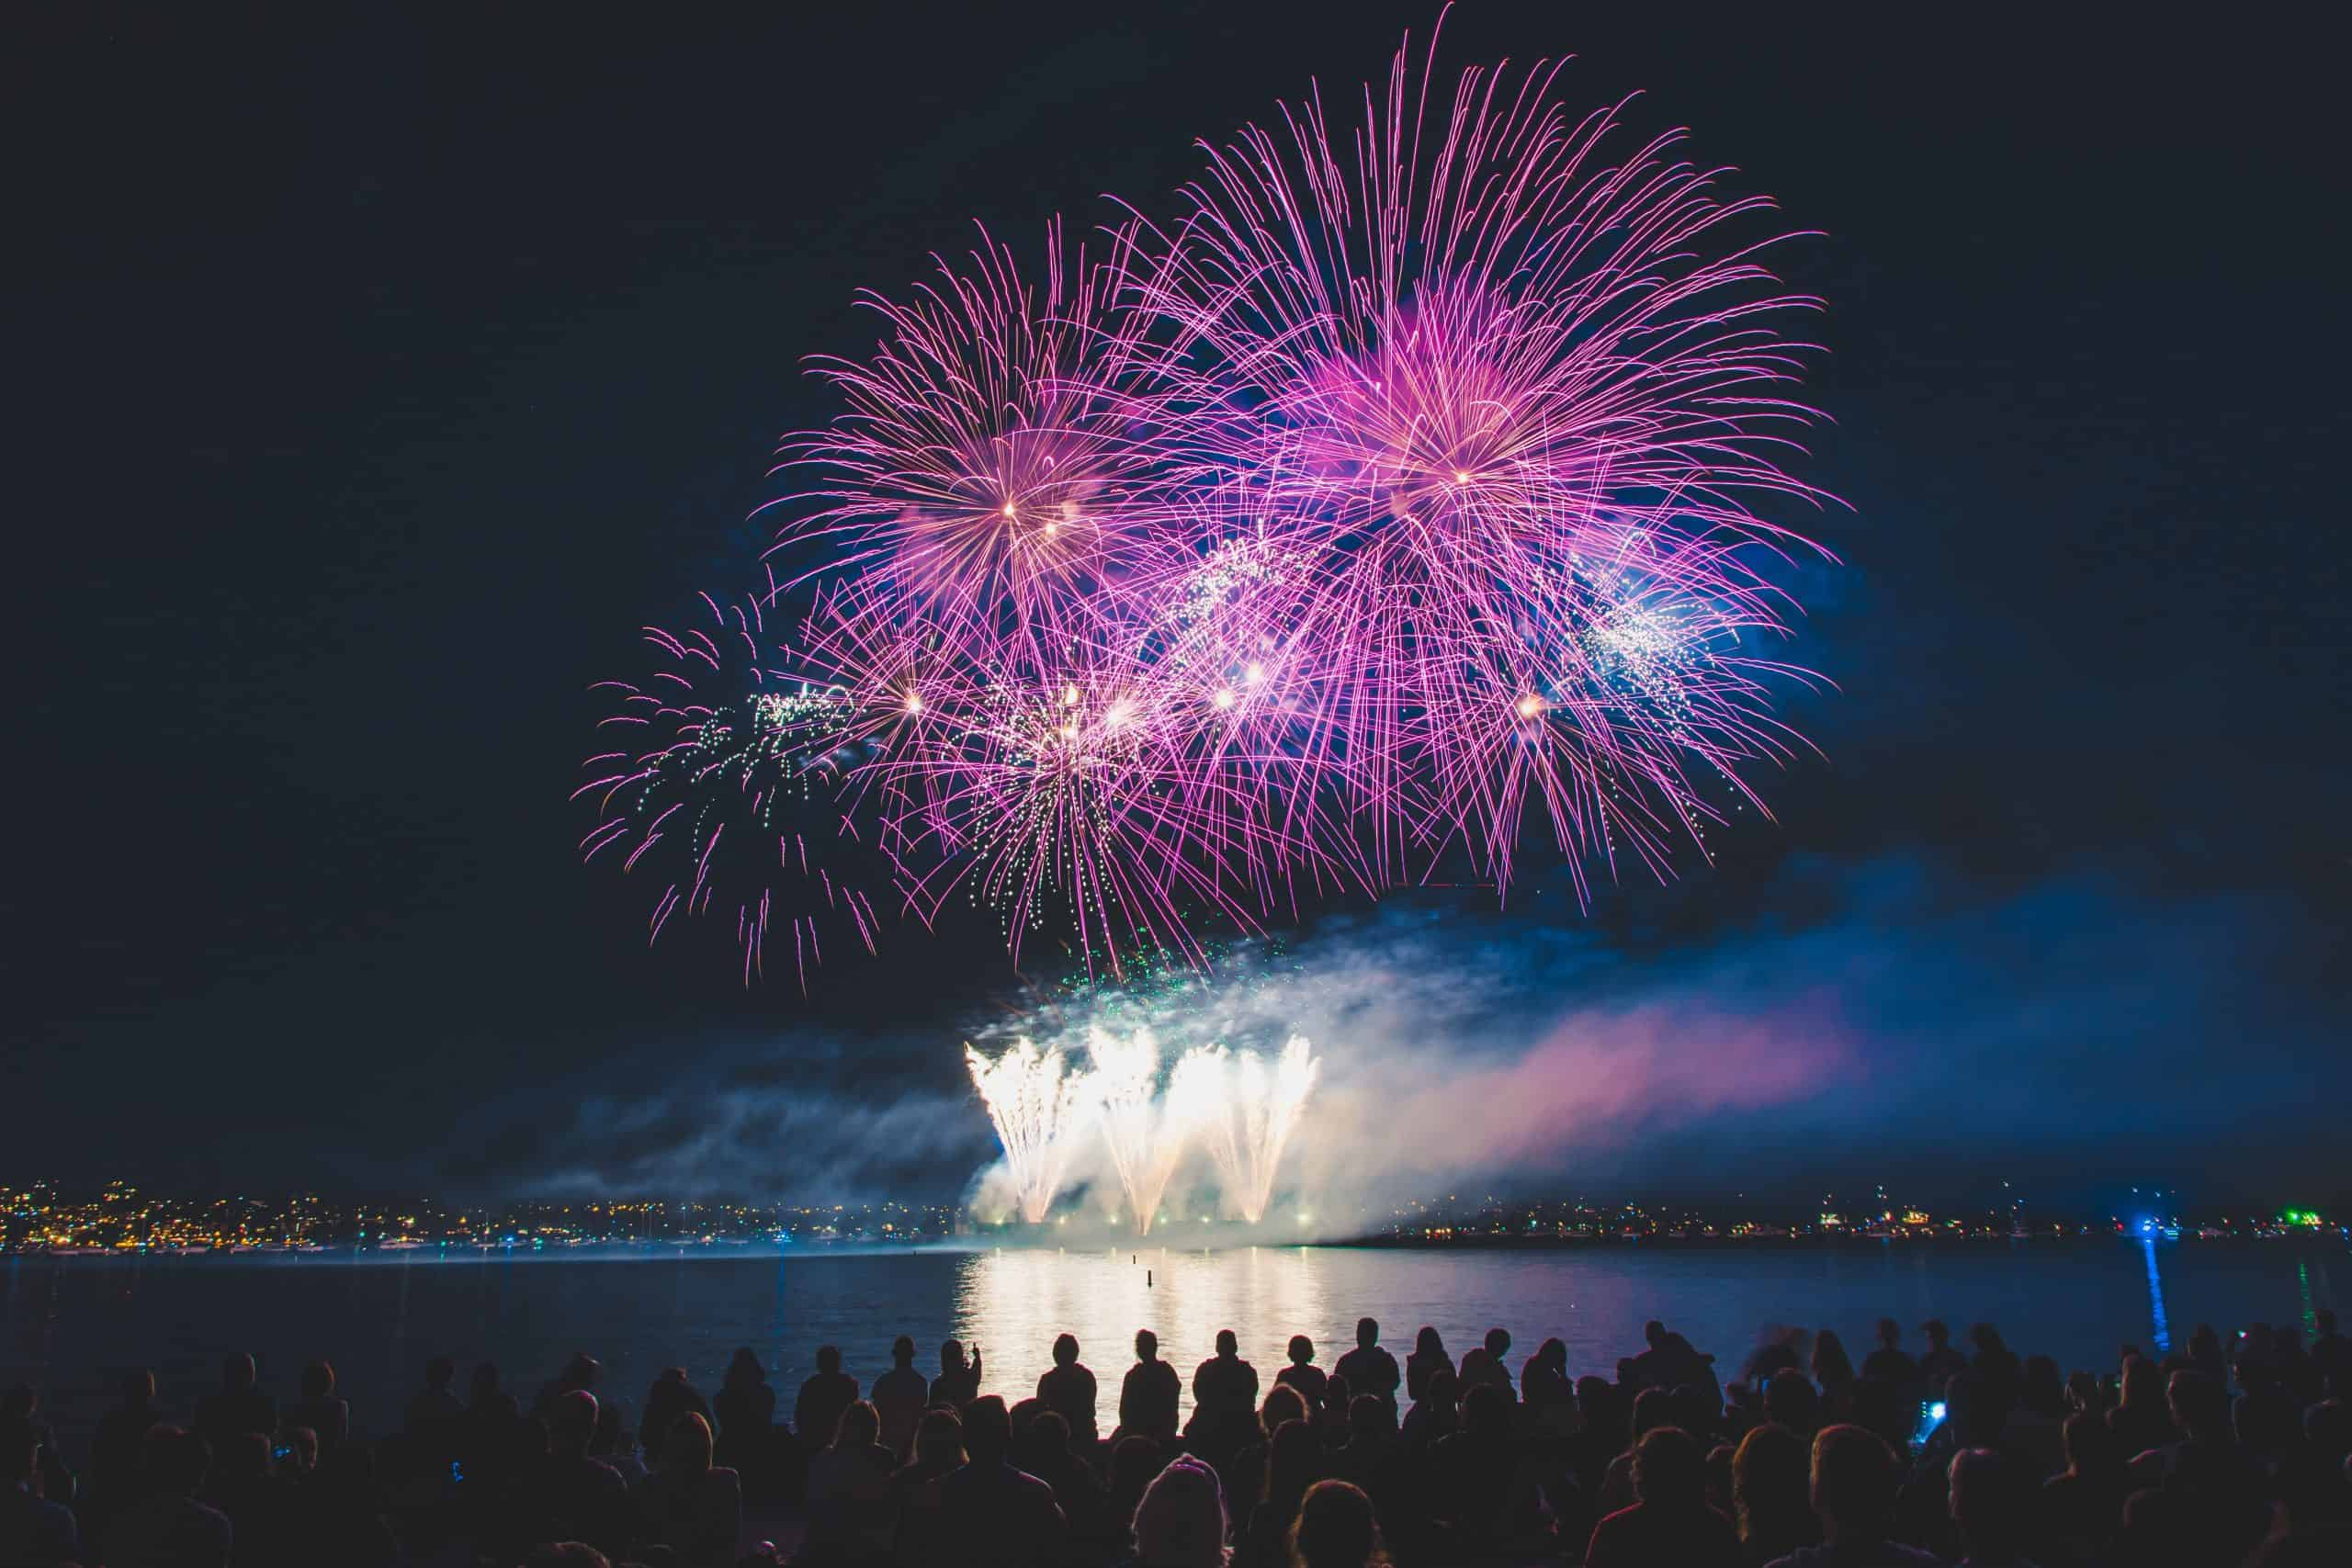 Vancouver celebration of light 2019 fireworks